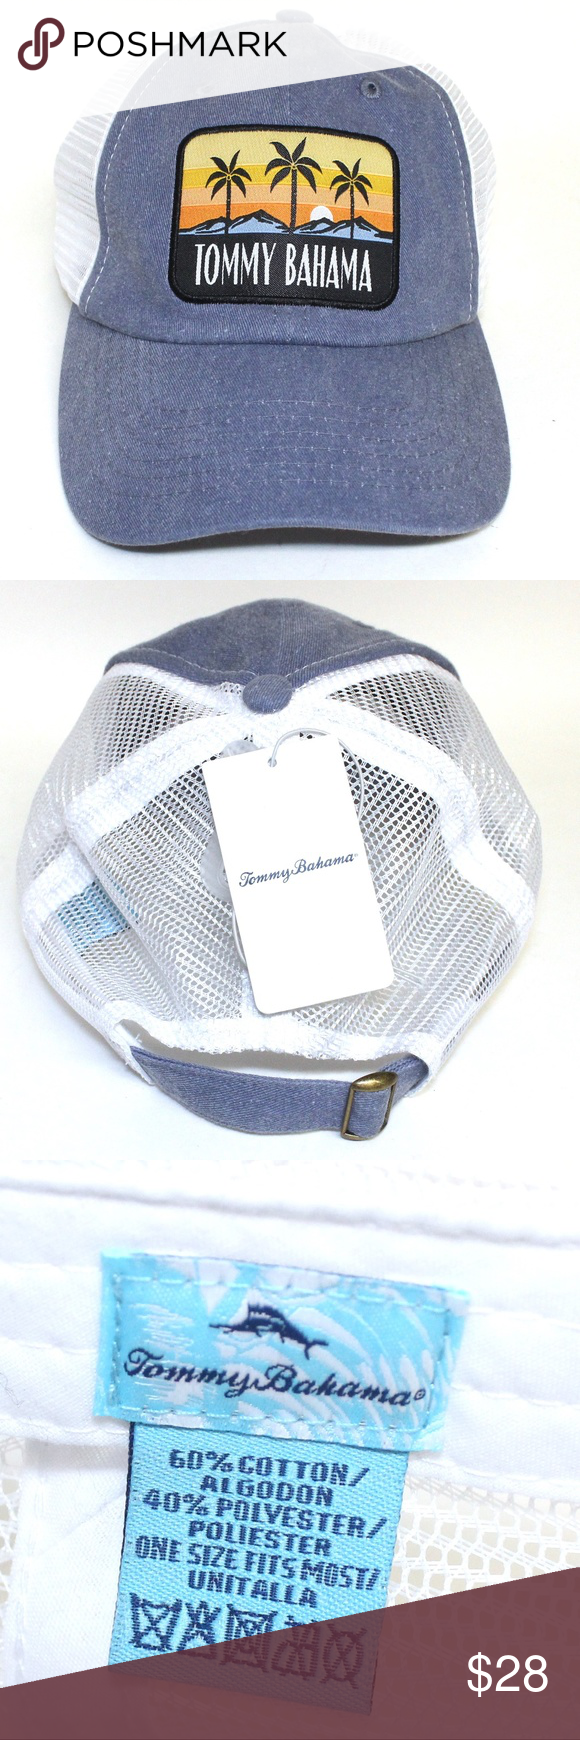 4254b862465da5 Tommy Bahama Hat Blue with White Mesh NWT Blue hat with white mesh  Adjustable New with Tag Palm Tree Patch One Size fits Most 60% Cotton 40 %  Polyester ...